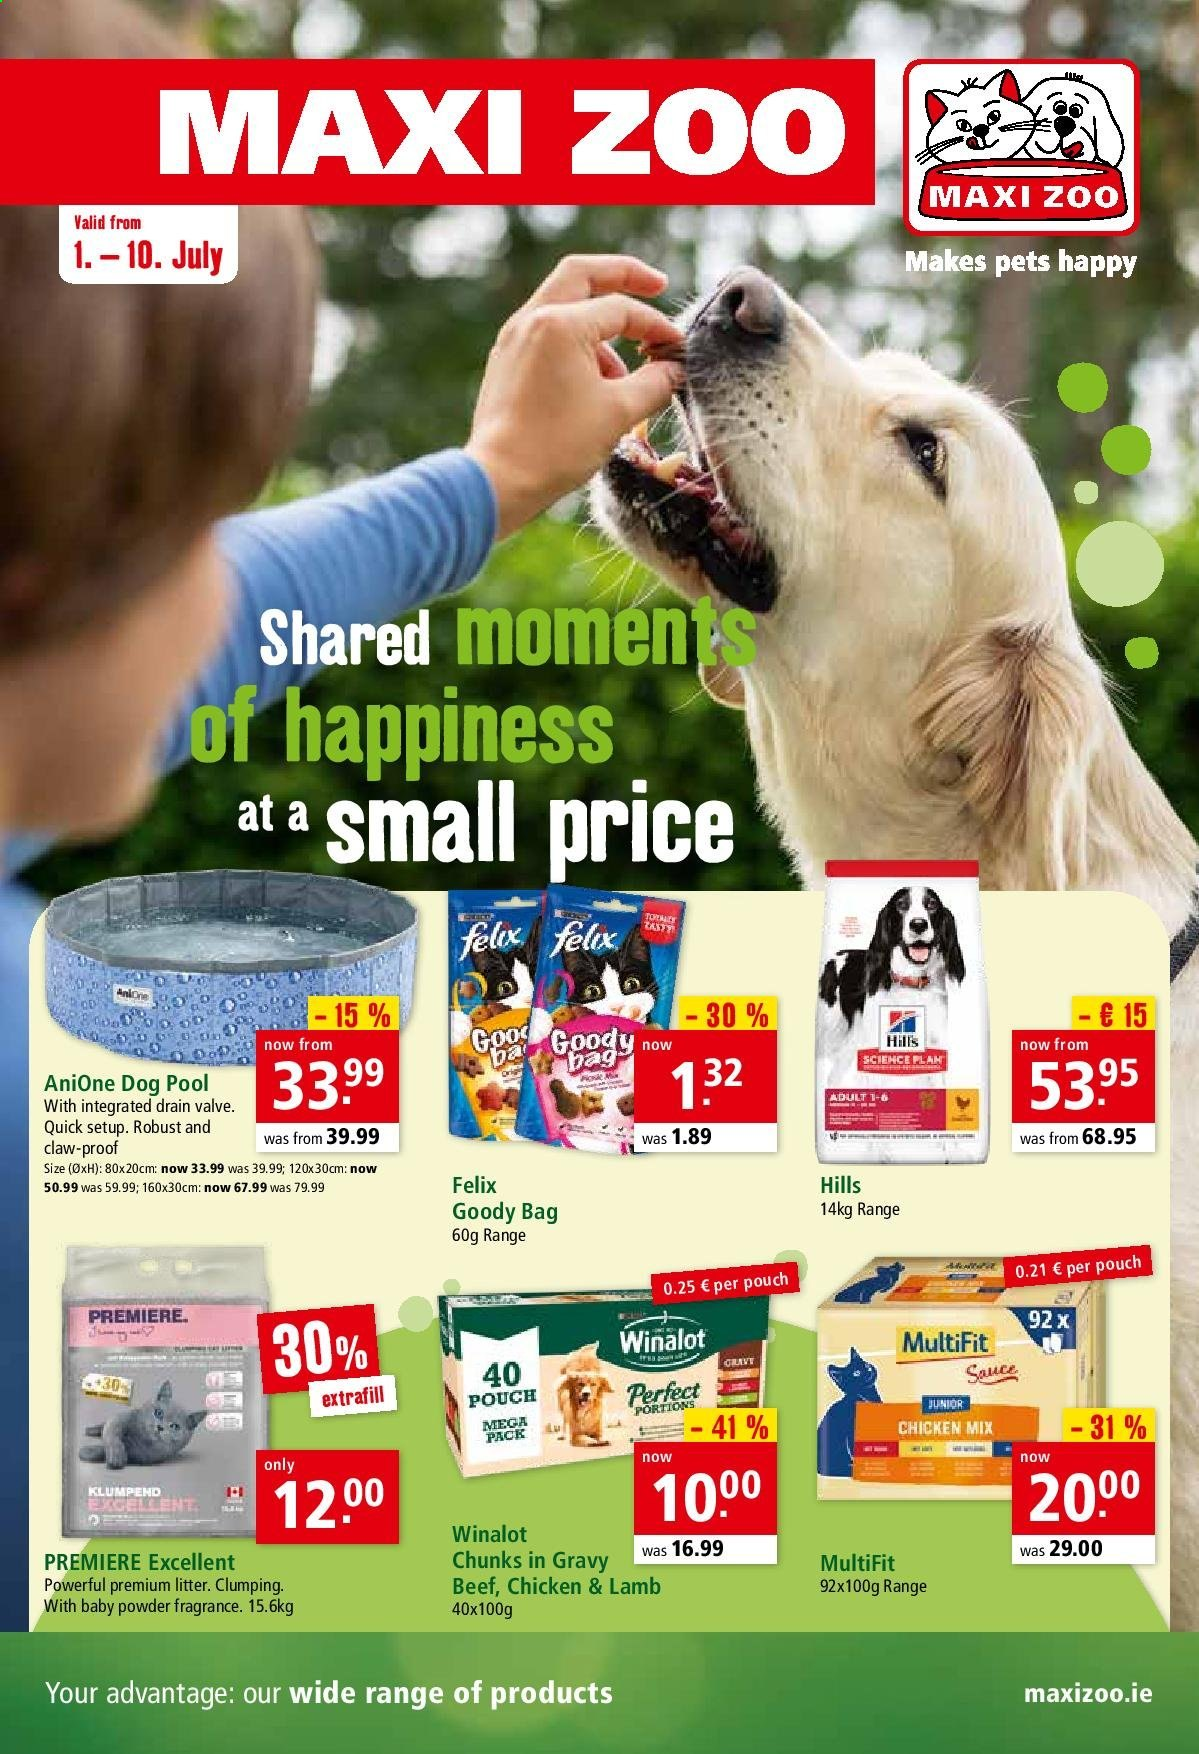 Maxi Zoo offer  - 1.7.2020 - 10.7.2020 - Sales products - bag, beef meat, fragrance, lamb meat, litter, pet, powder, quick, chicken, pool, sauce. Page 1.